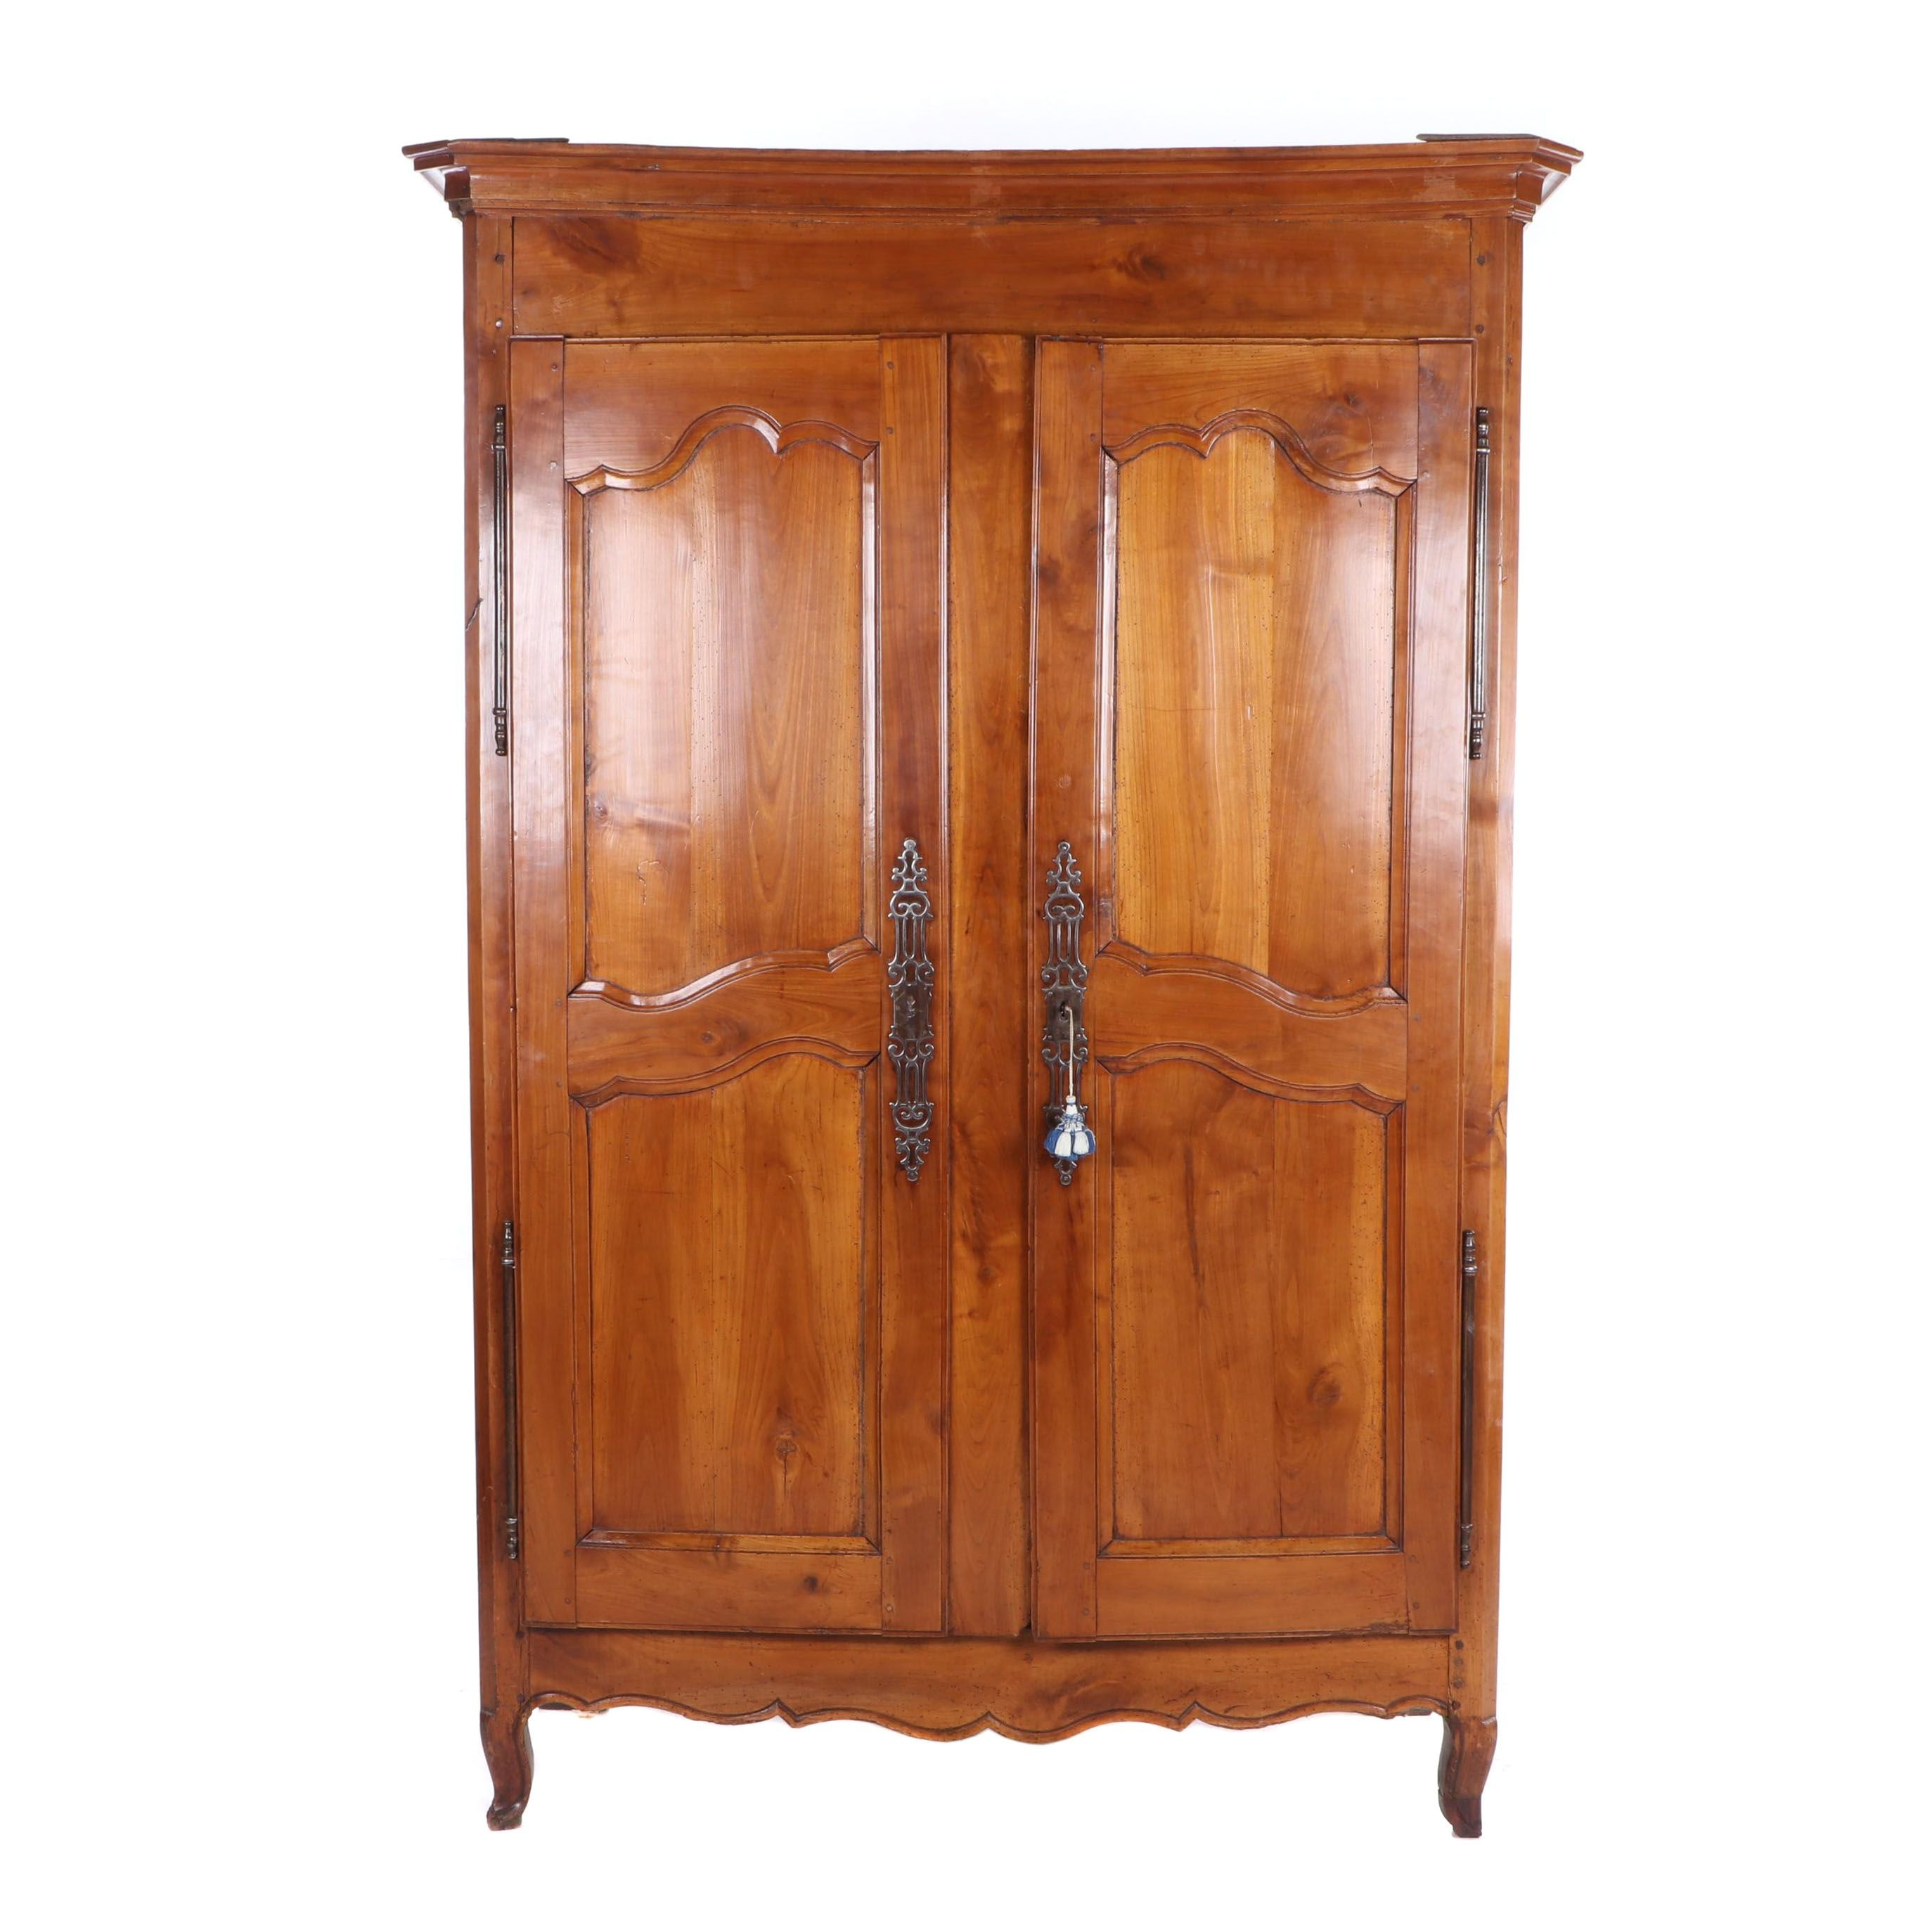 French Provincial Oak Wardrobe, Late 19th to Early 20th Century